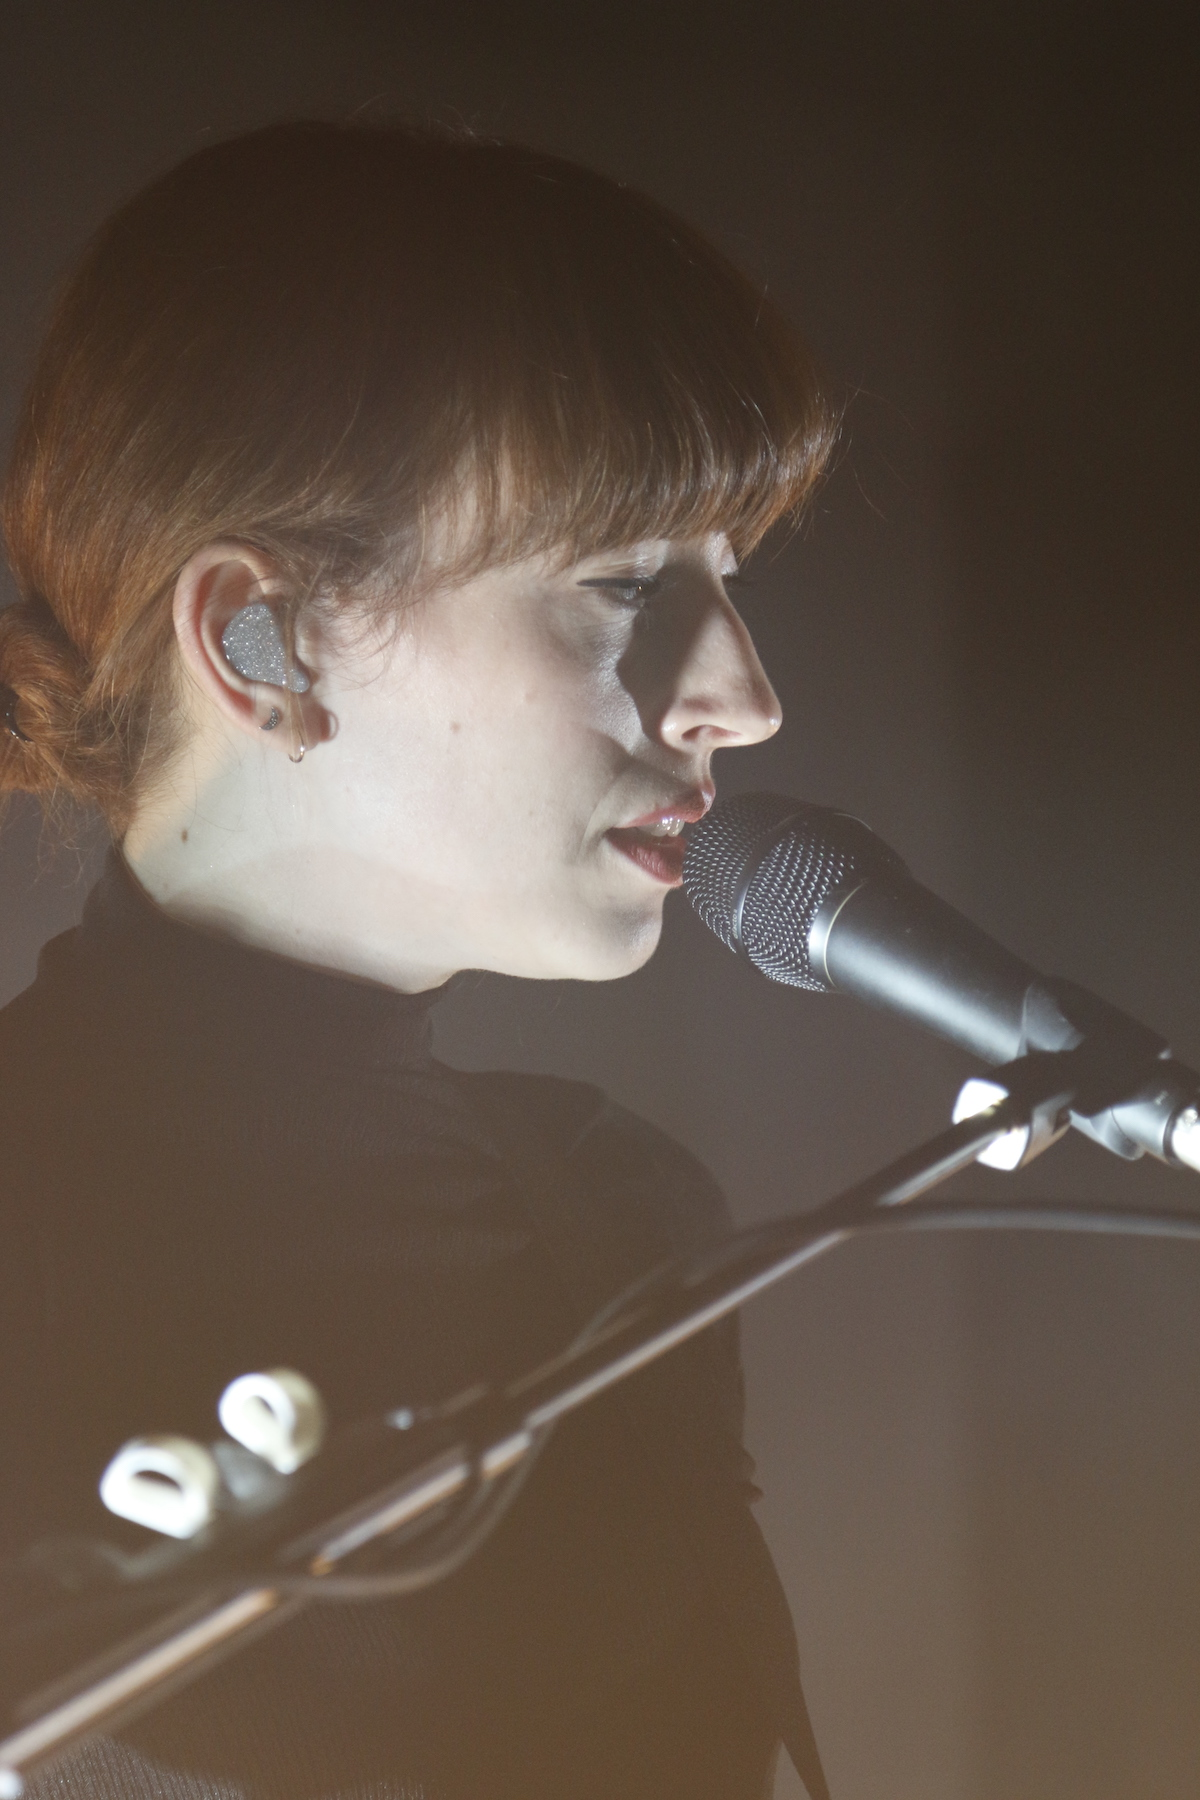 Daughter (Credit Rene Bittner/MusikBlog)